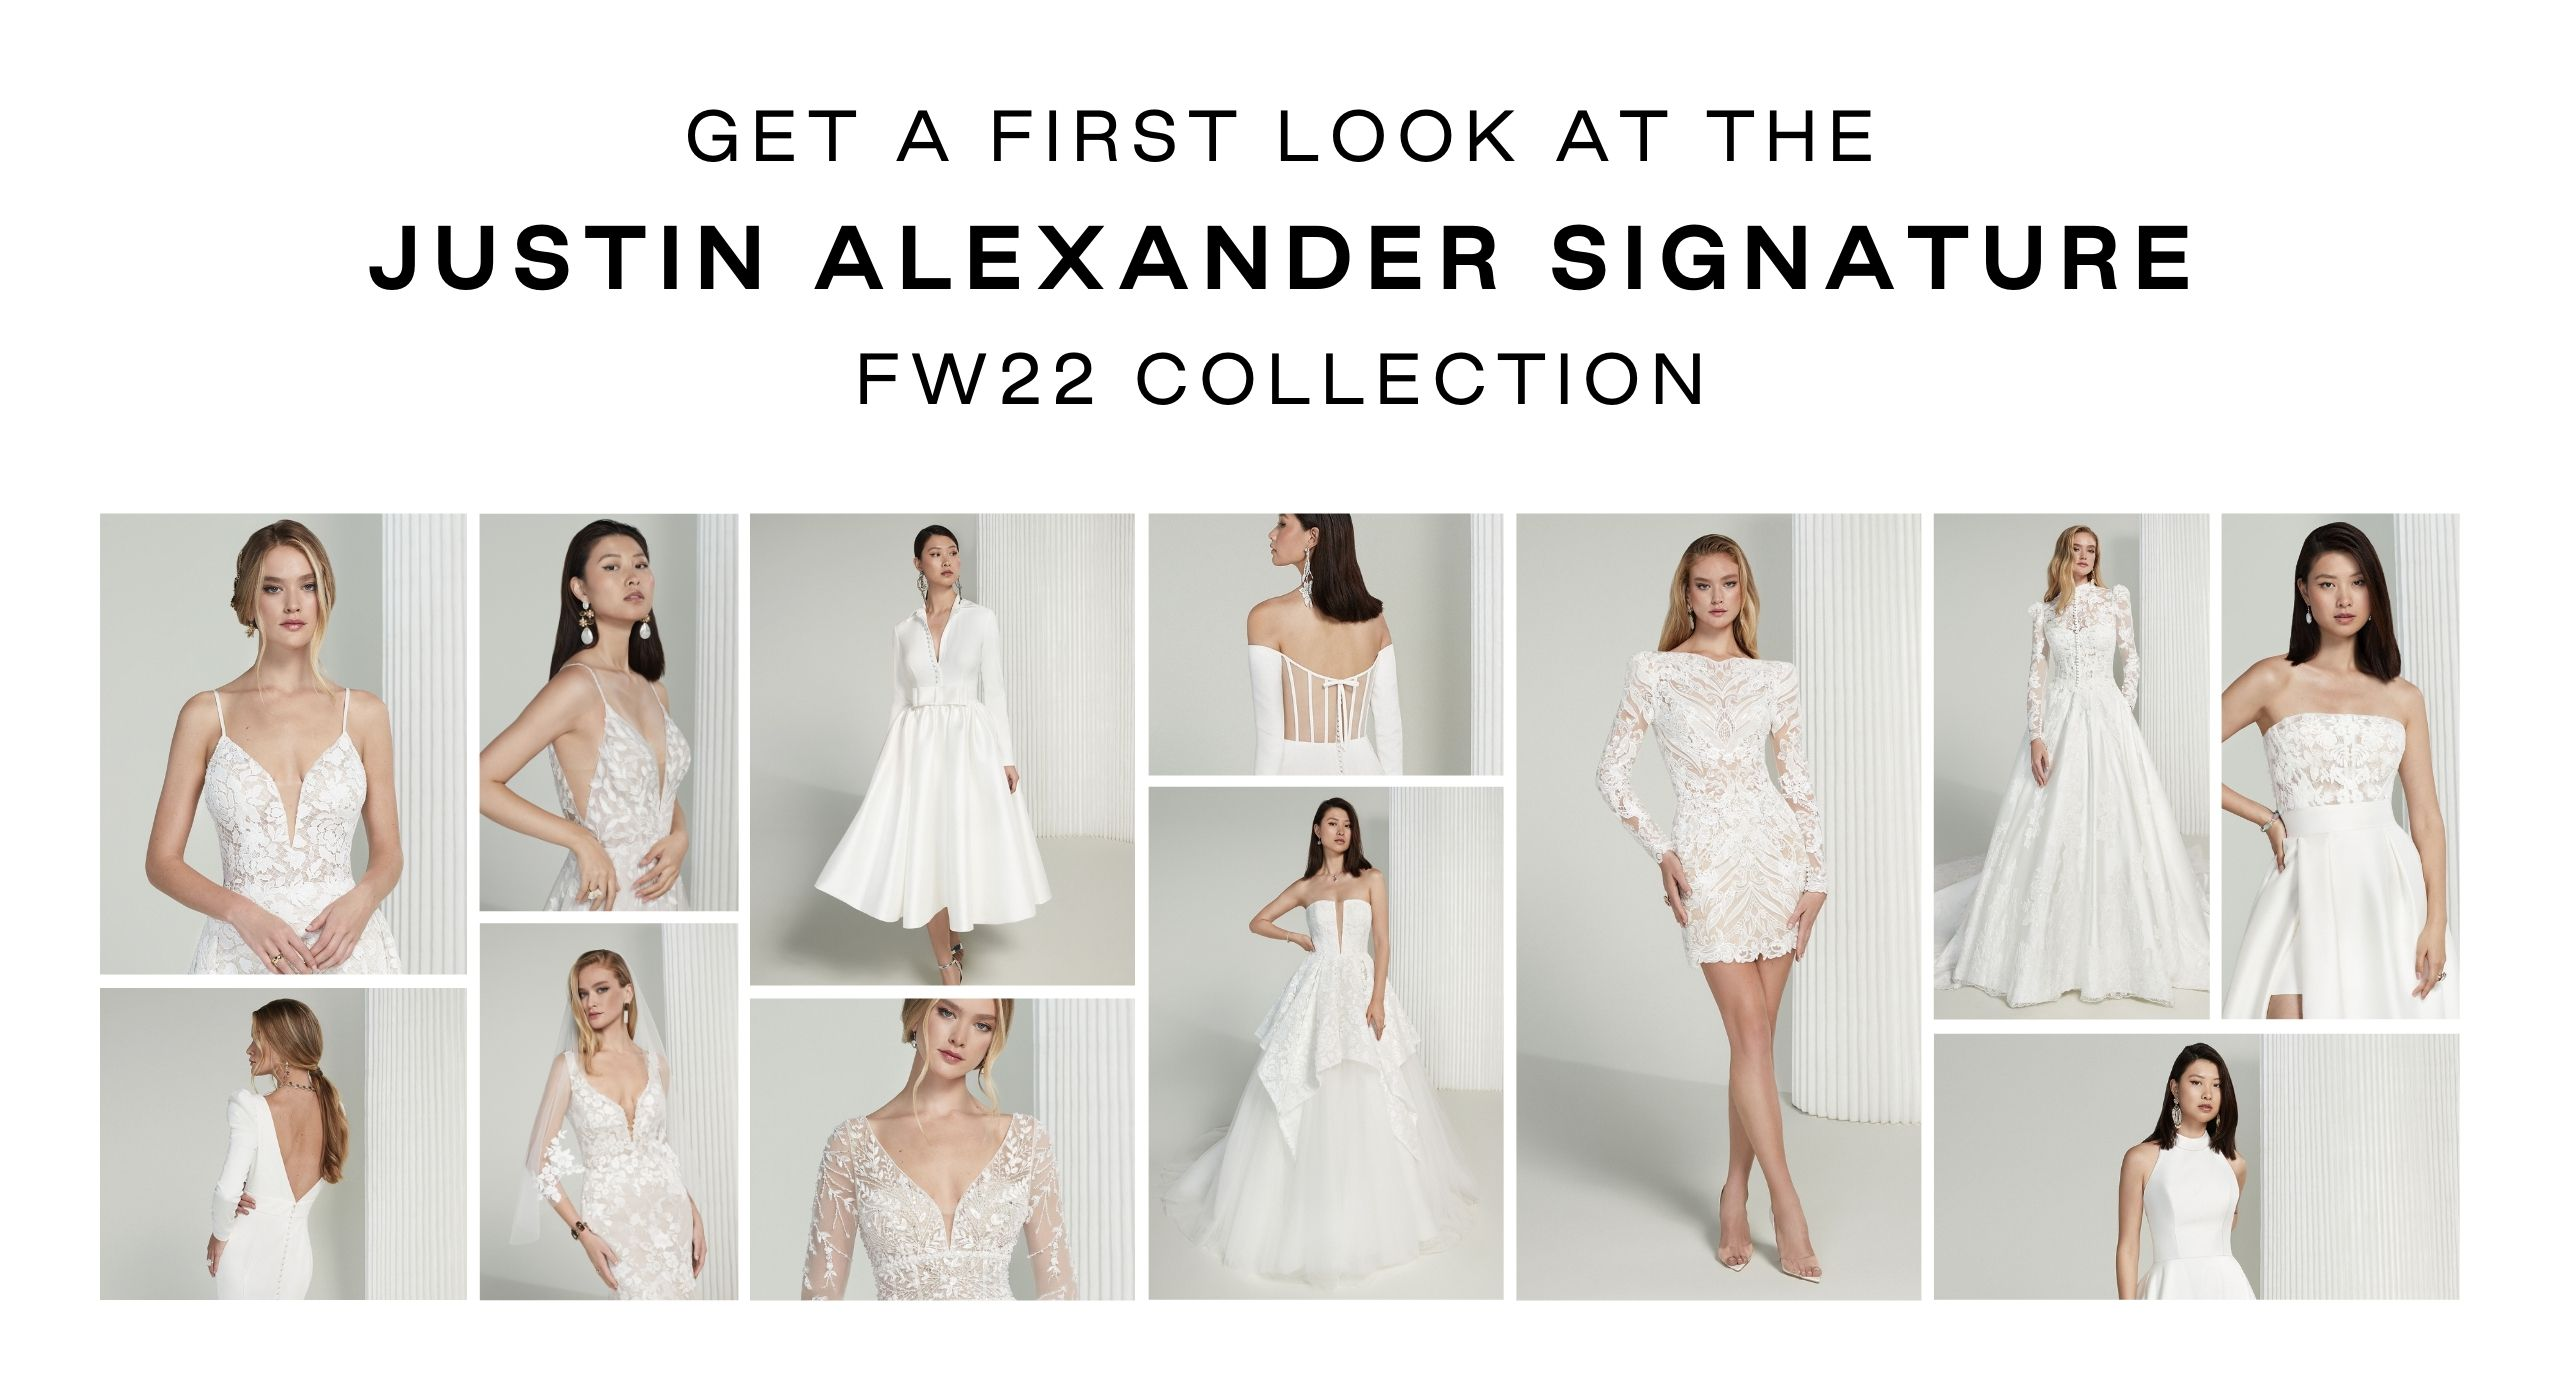 Get a first look at the Justin Alexander Signature FW22 Collection